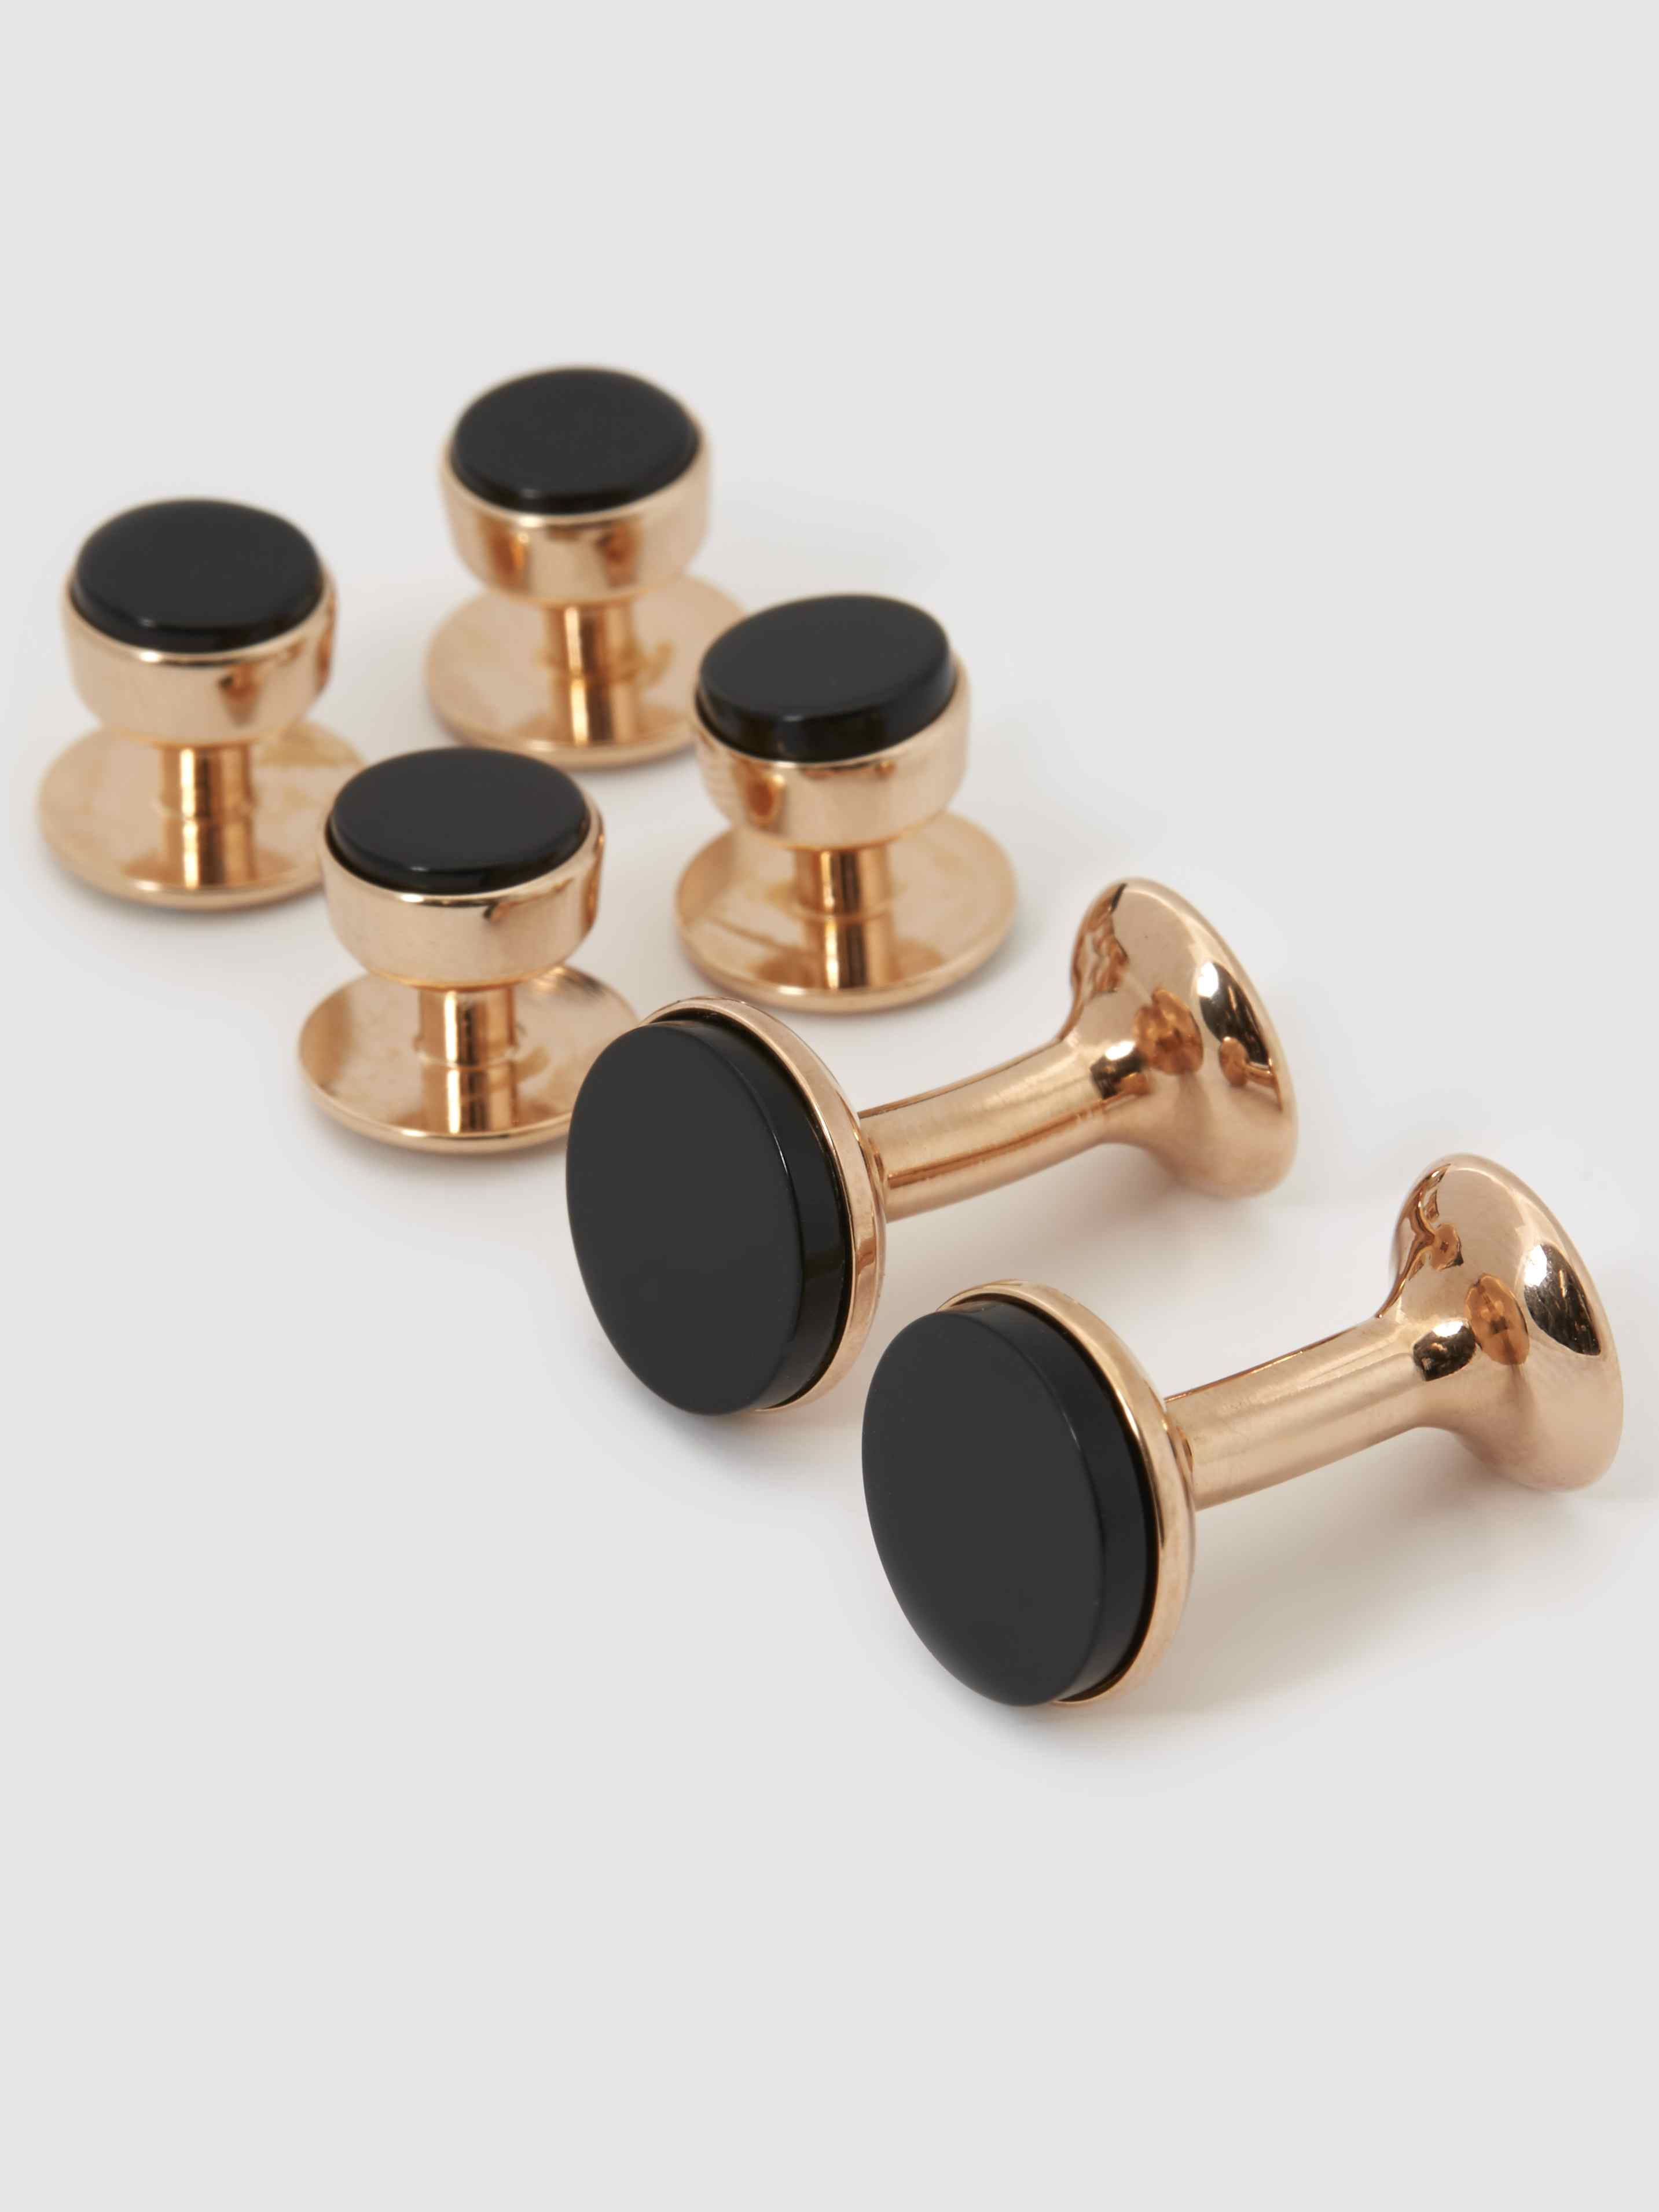 Onyx and Rose Gold Dress Stud and Cufflink Set